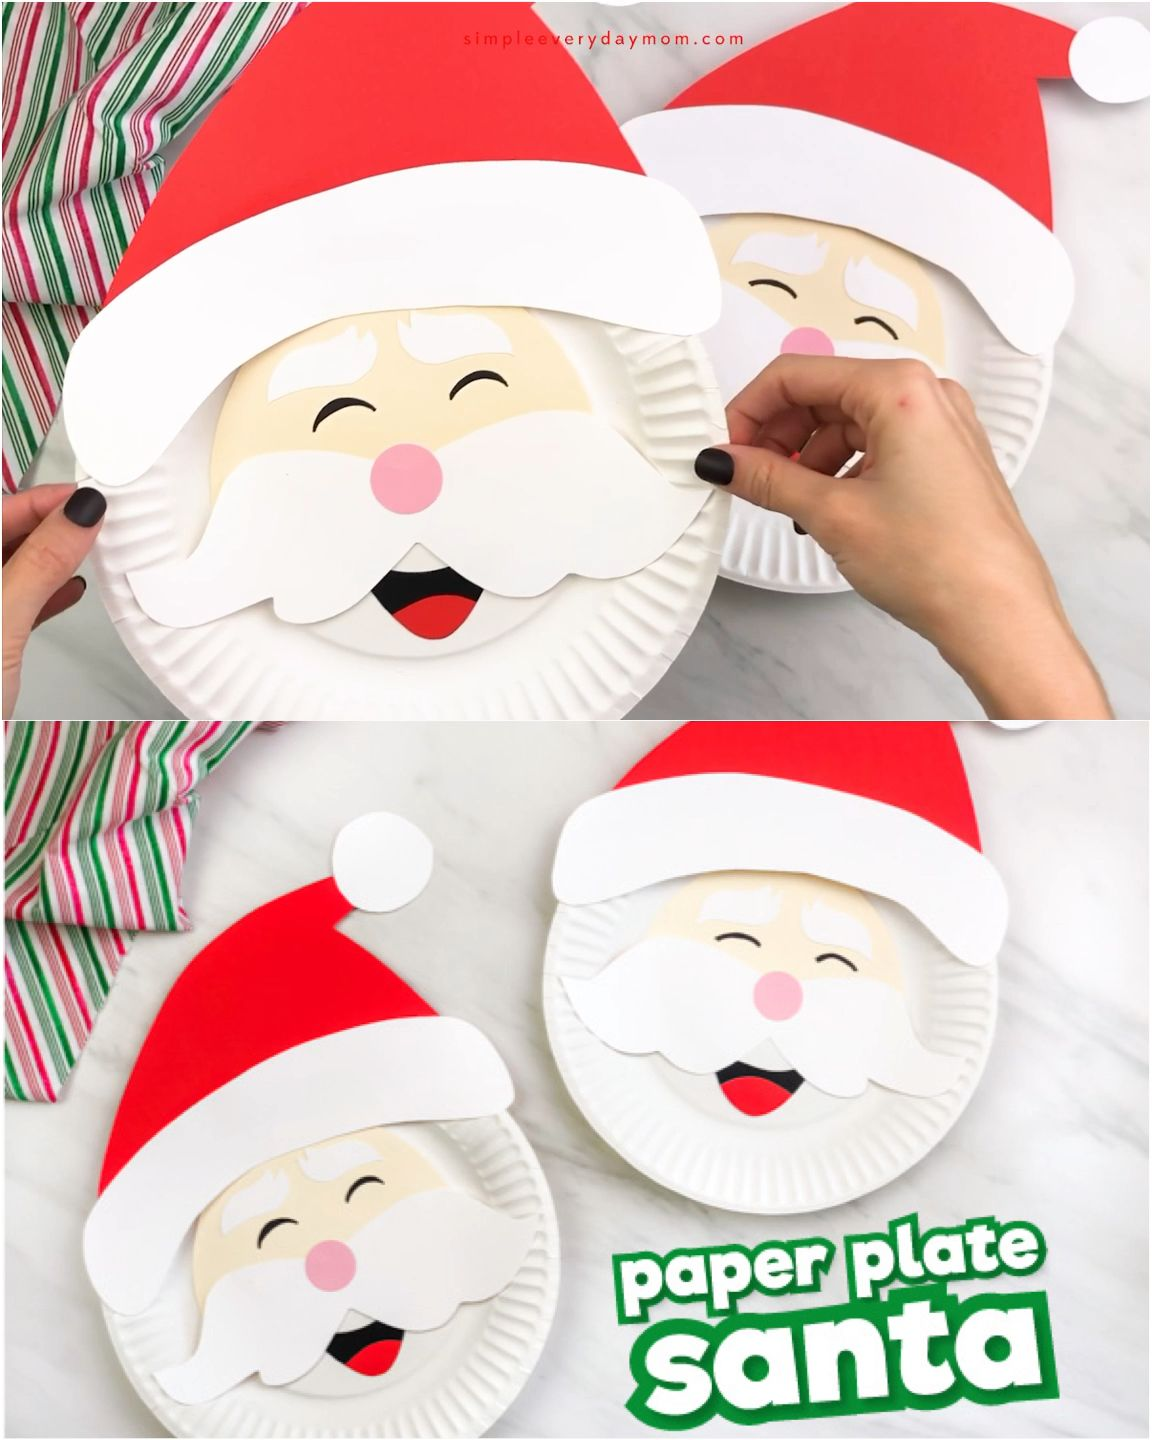 Paper Plate Santa Craft For Kids #paperprojects